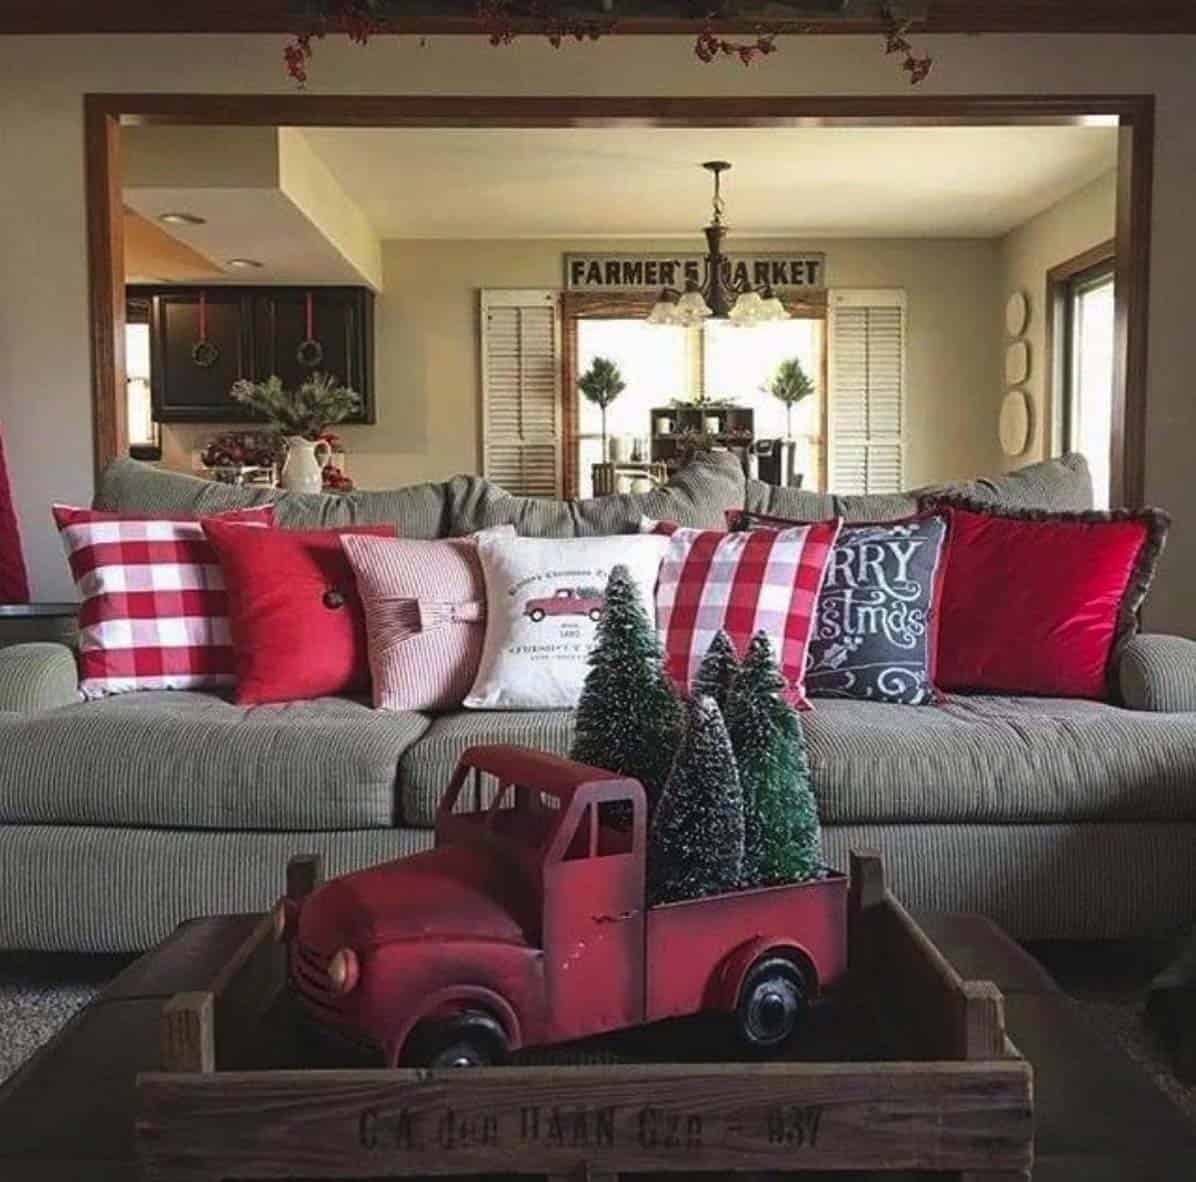 rustic-farmhouse-christmas-decorating-ideas-living-room-red-truck